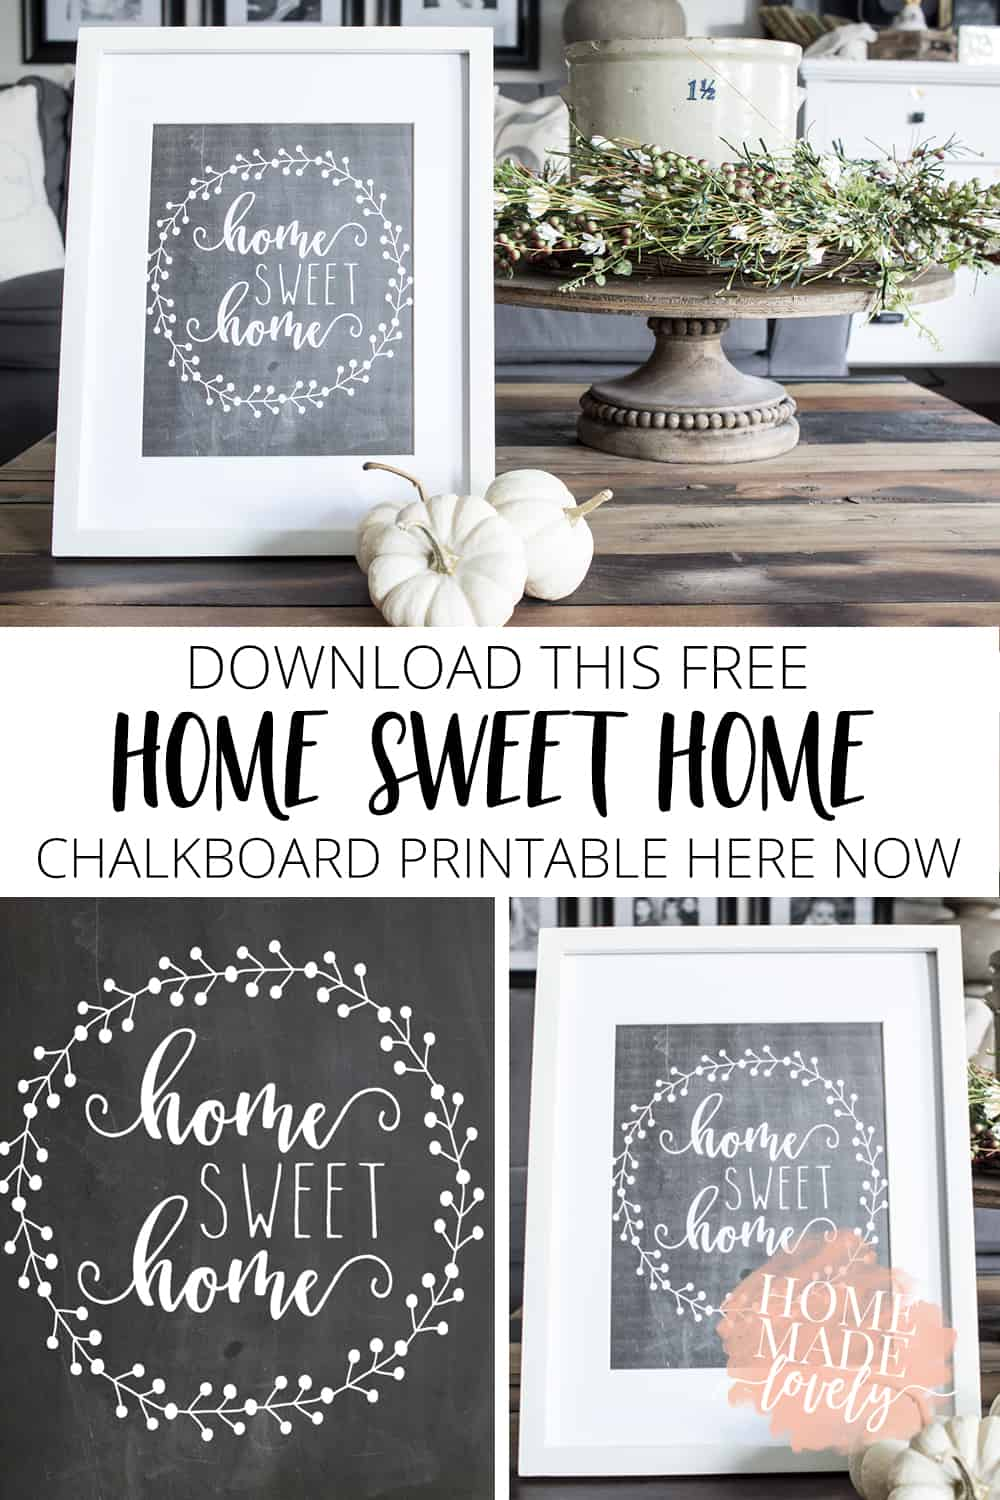 photo relating to Free Chalkboard Printable named Obtain This Cost-free Dwelling Lovable Property Chalkboard Printable Right here Presently